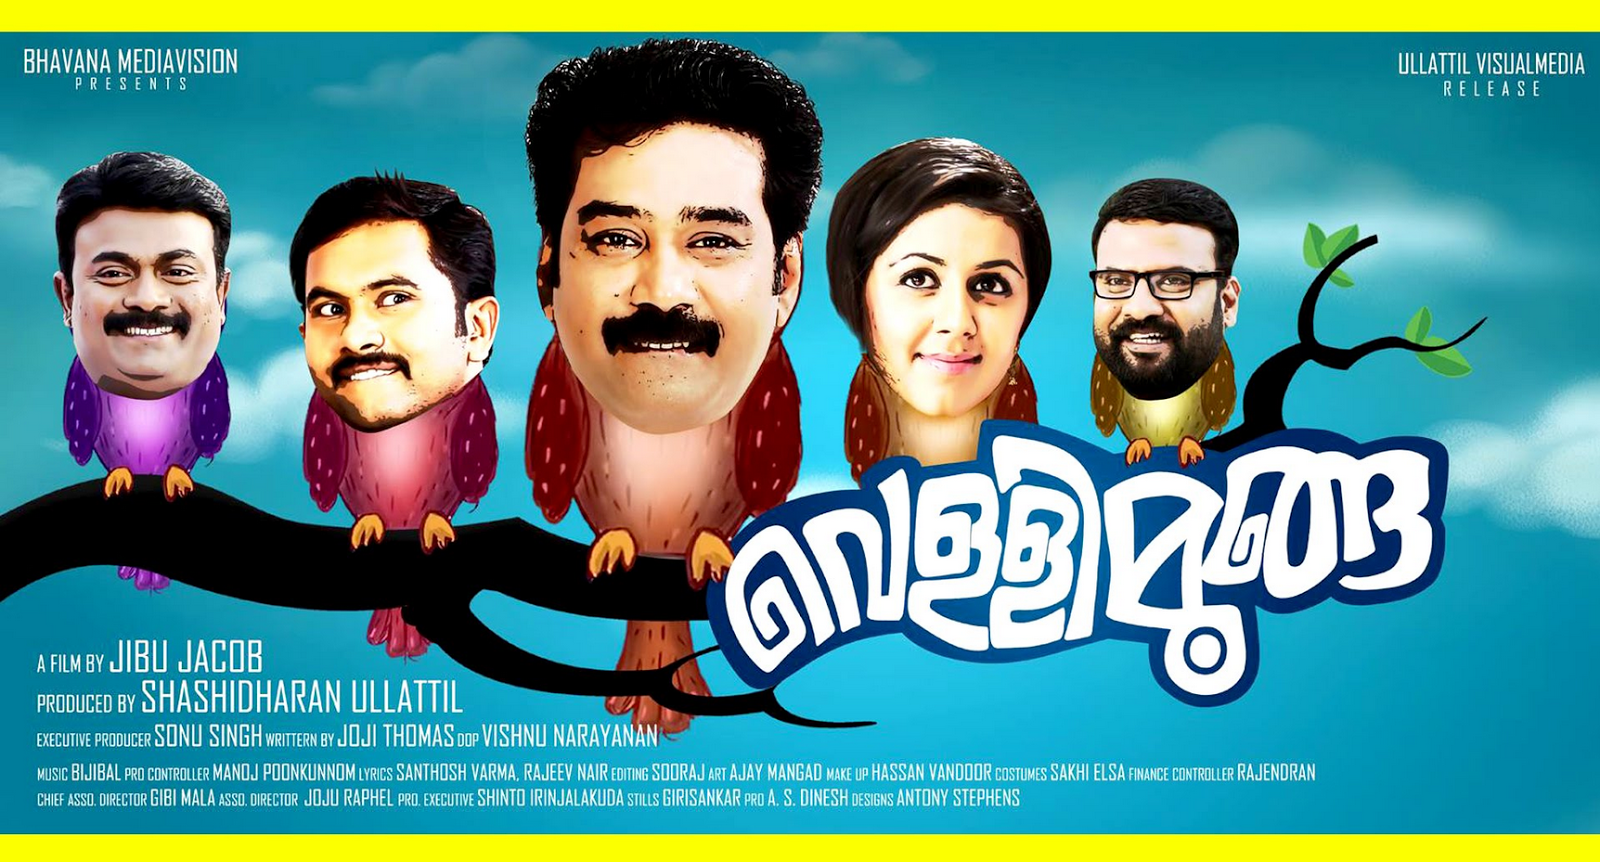 Vellimoonga (2014) : Mavelikku shesham Song Lyrics